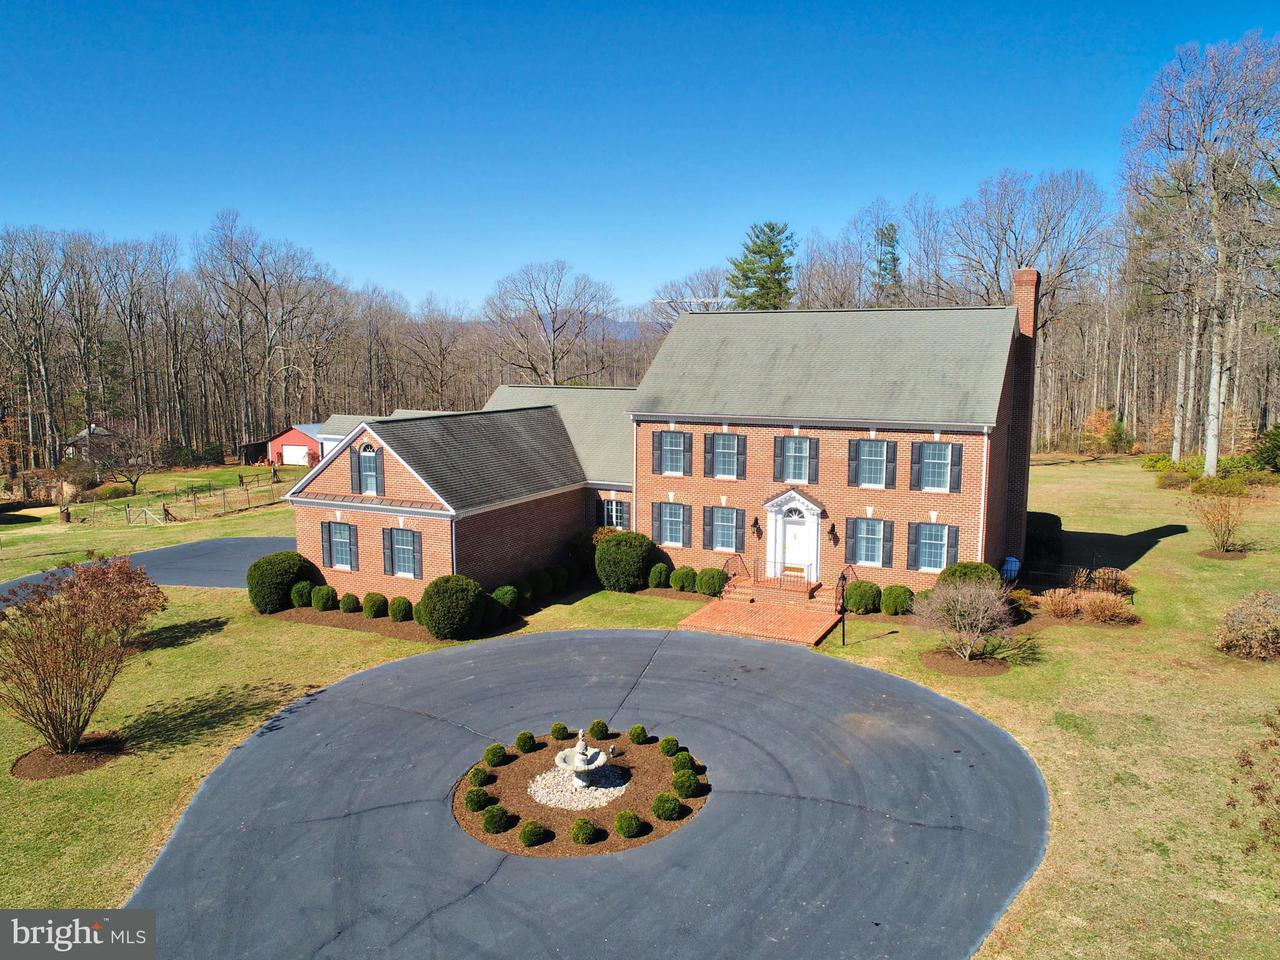 Single Family Home for Sale at 5870 South Seminole Trl S 5870 South Seminole Trl S Madison, Virginia 22727 United States